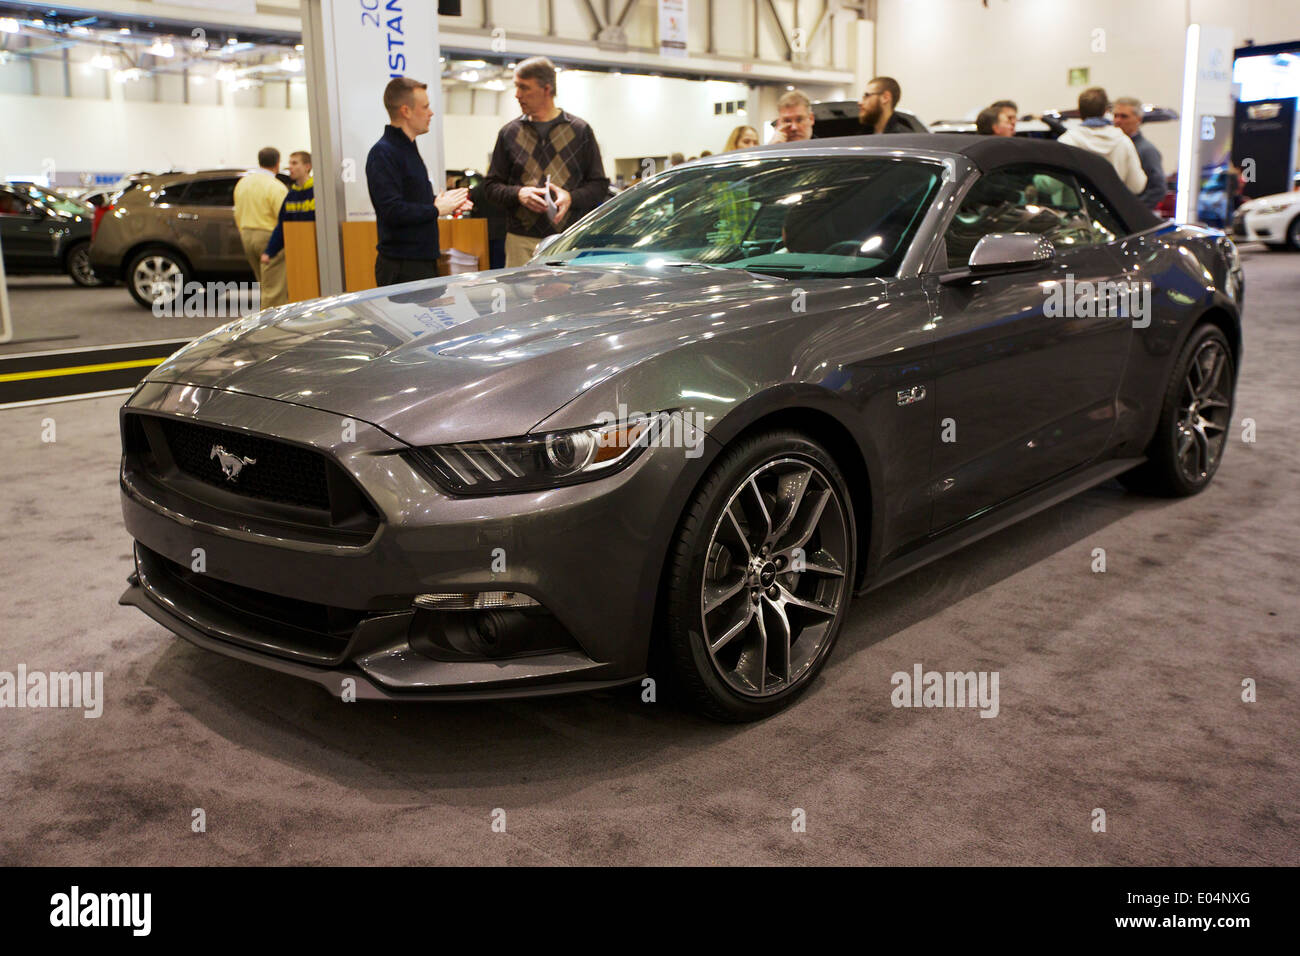 2015 Ford Mustang Convertible Prototype At The Michigan International Auto Show In Grand Rapids February 2014